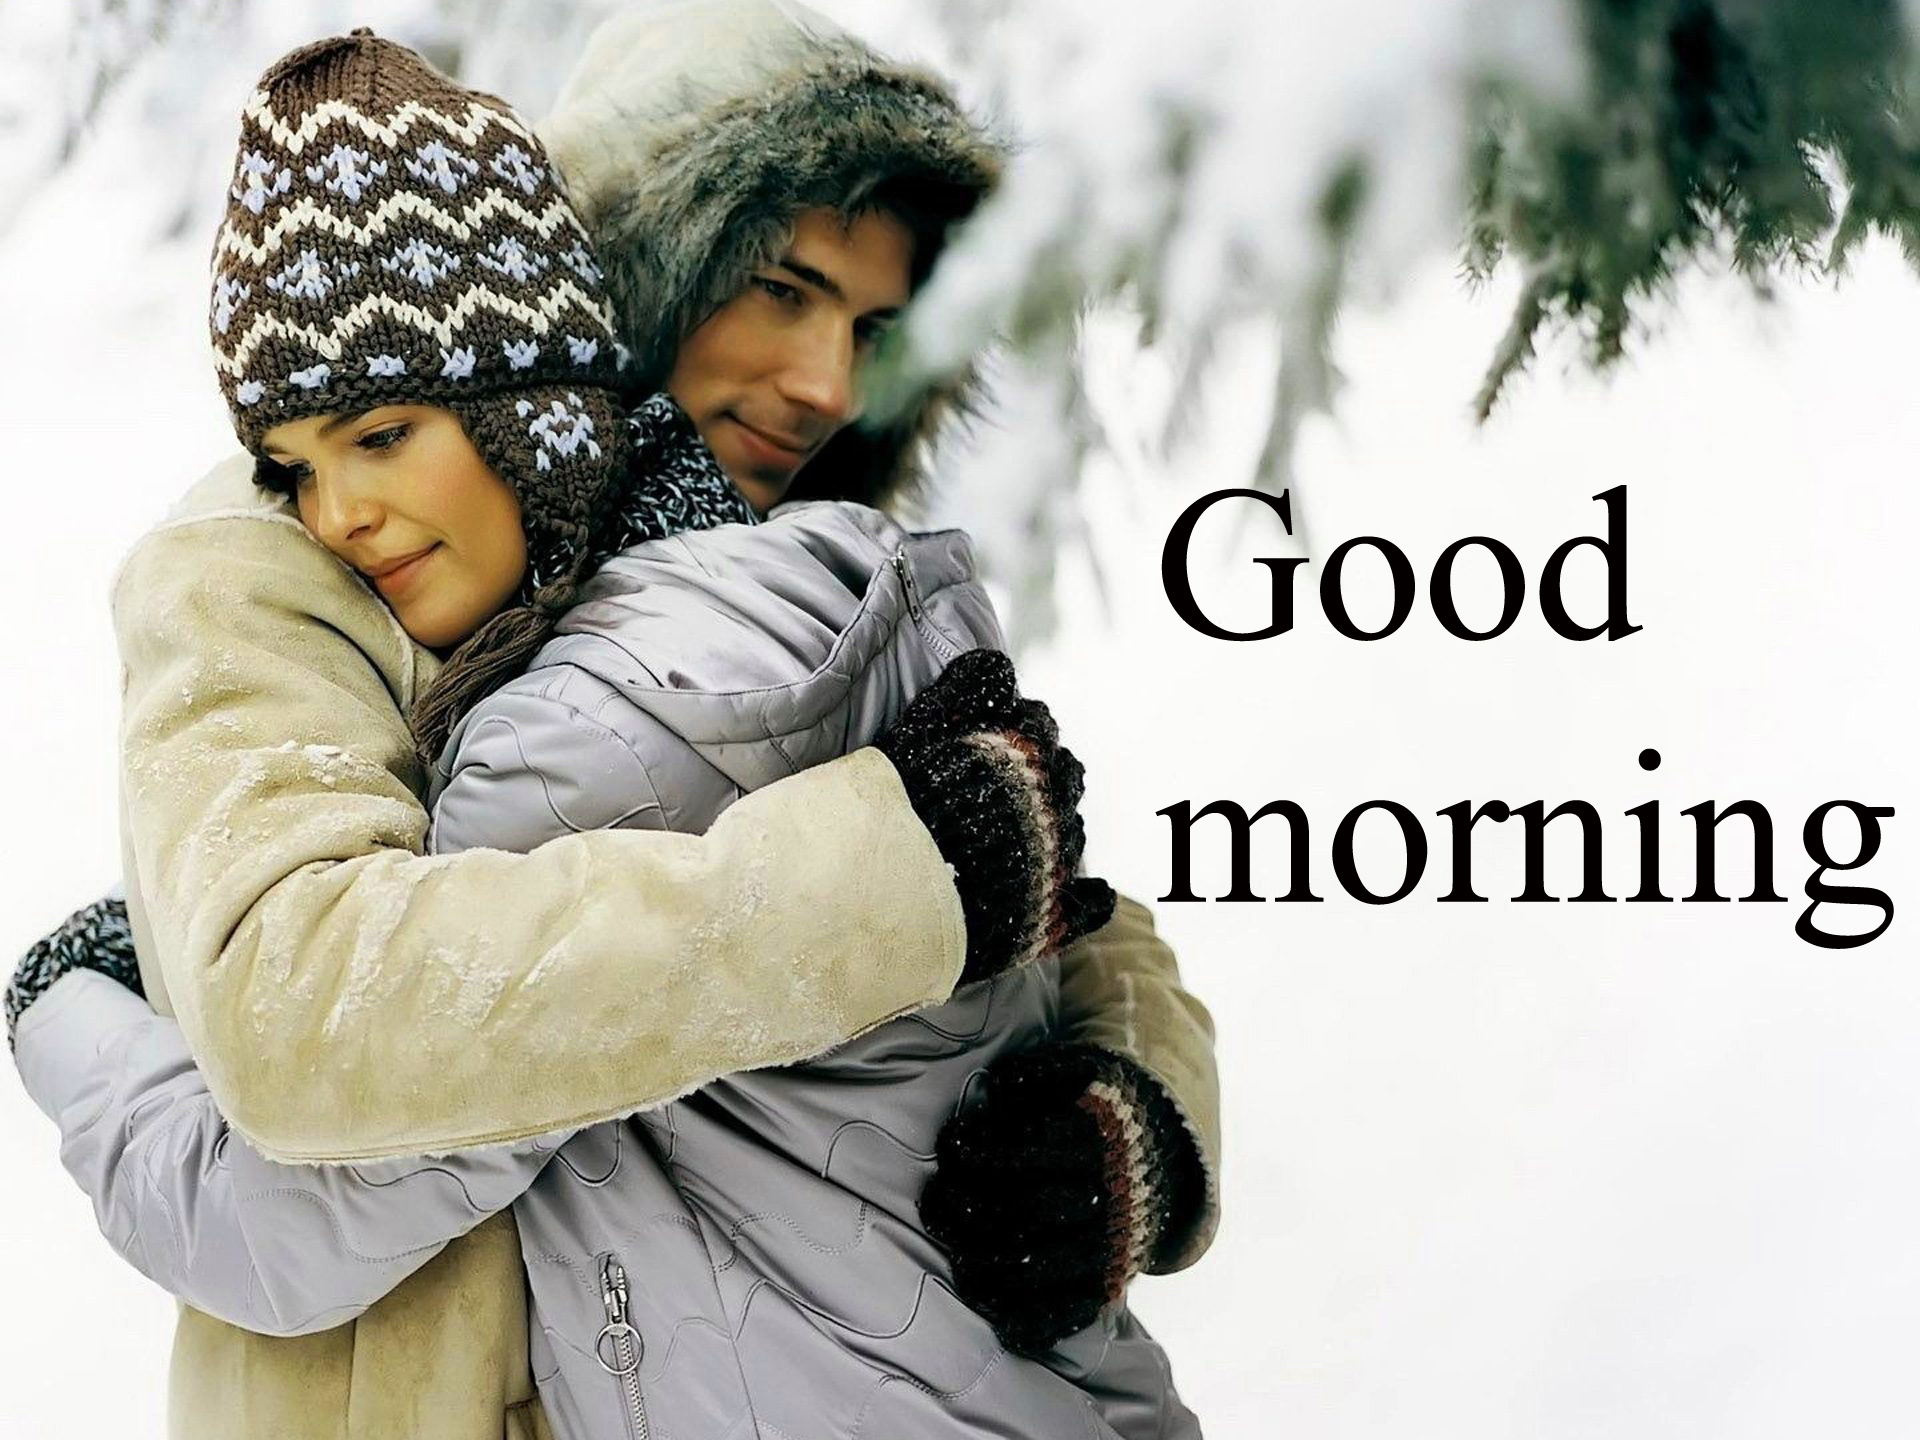 Romantic good morning Images Wallpaper Pictures Pics HD For Whatsapp